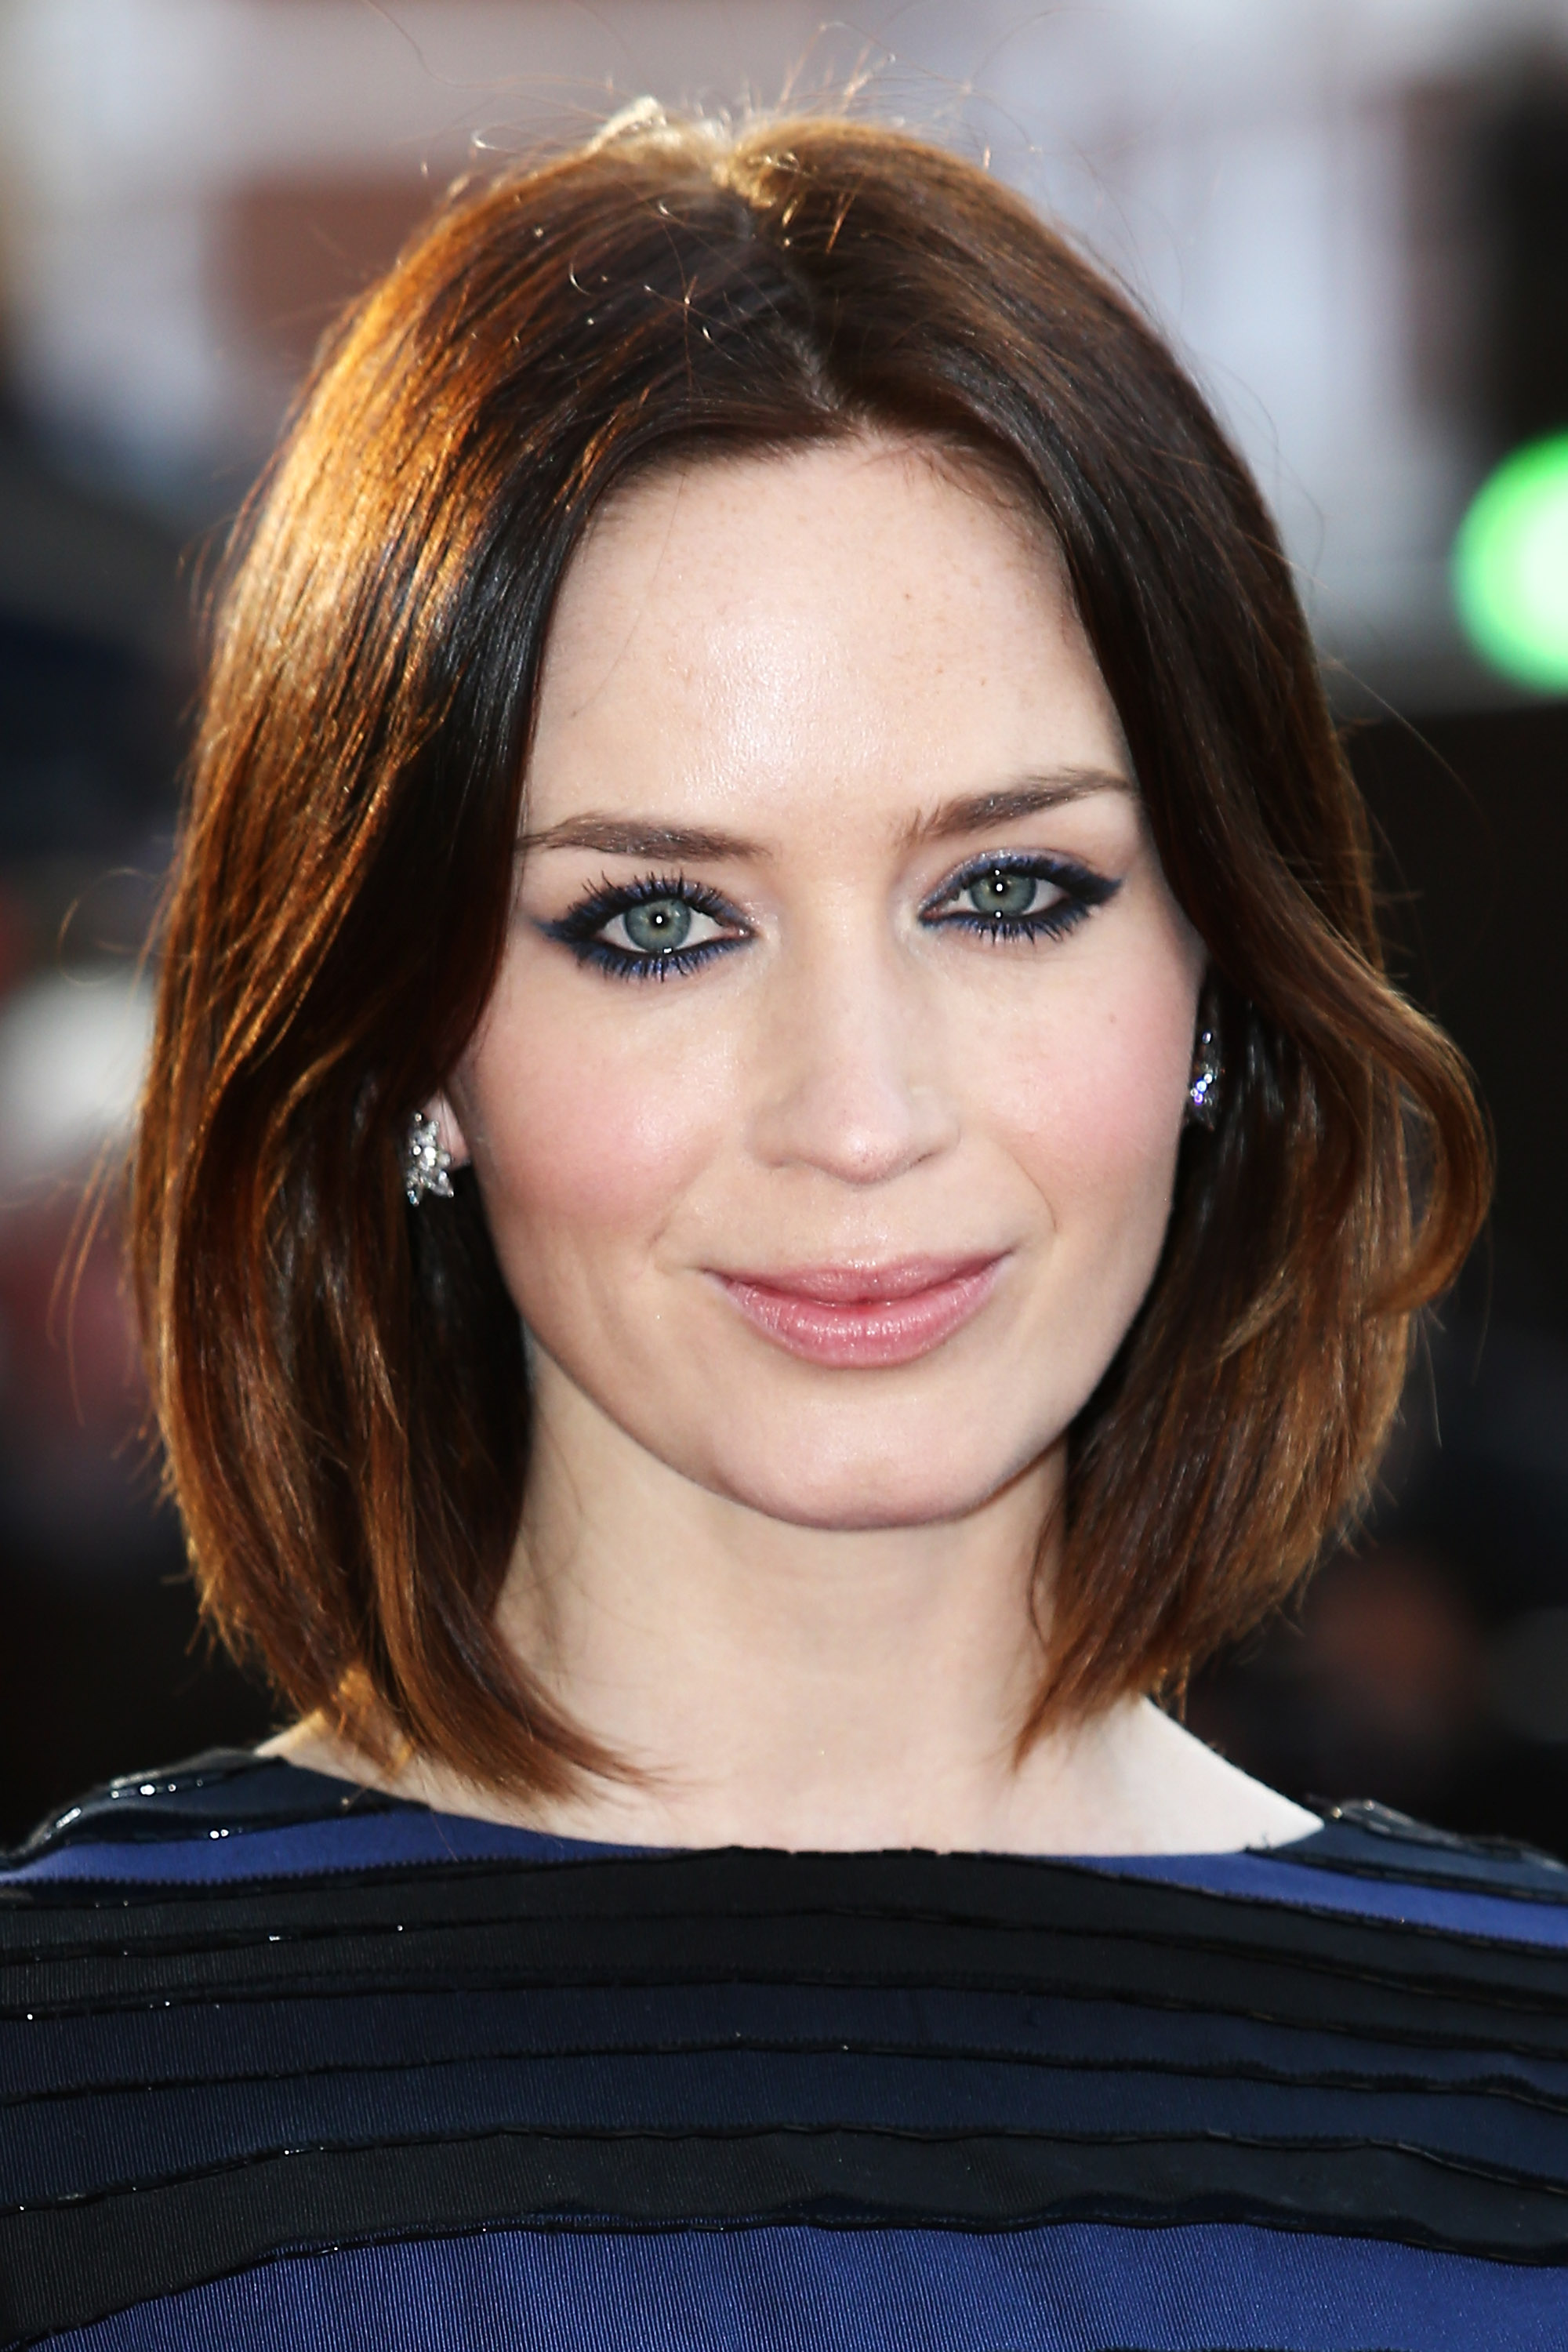 Swell 17 Lob Hairstyles On Celebrities In 2016 Best Long Bob Haircut Ideas Hairstyles For Women Draintrainus